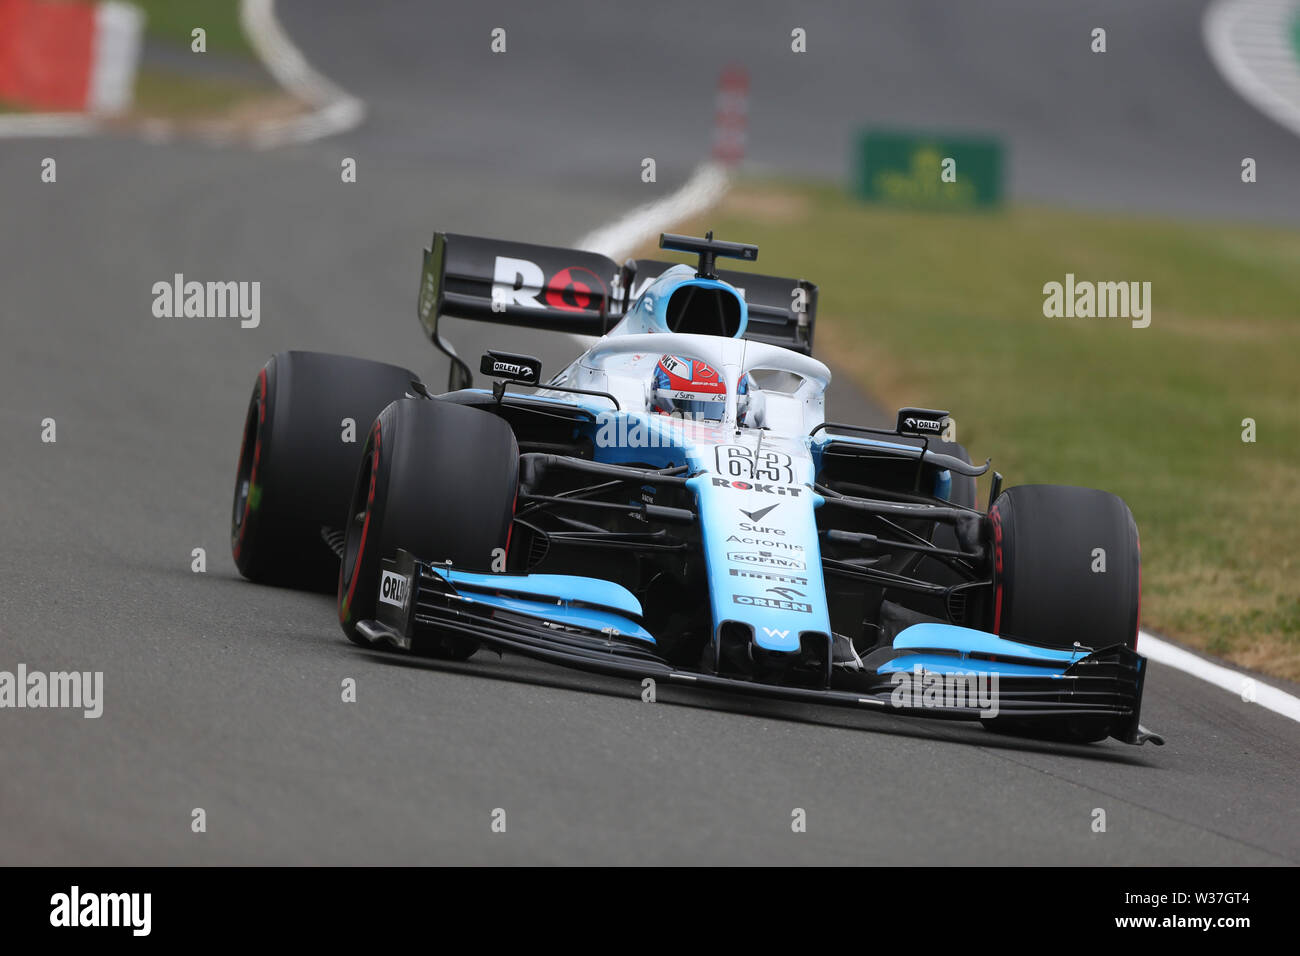 © Photo4 / LaPresse13/07/2019 Silverstone, England  Sport  Grand Prix Formula One England 2019 In the pic: free practice 3, George Russell (GBR) Williams F1 FW42 - Stock Photo